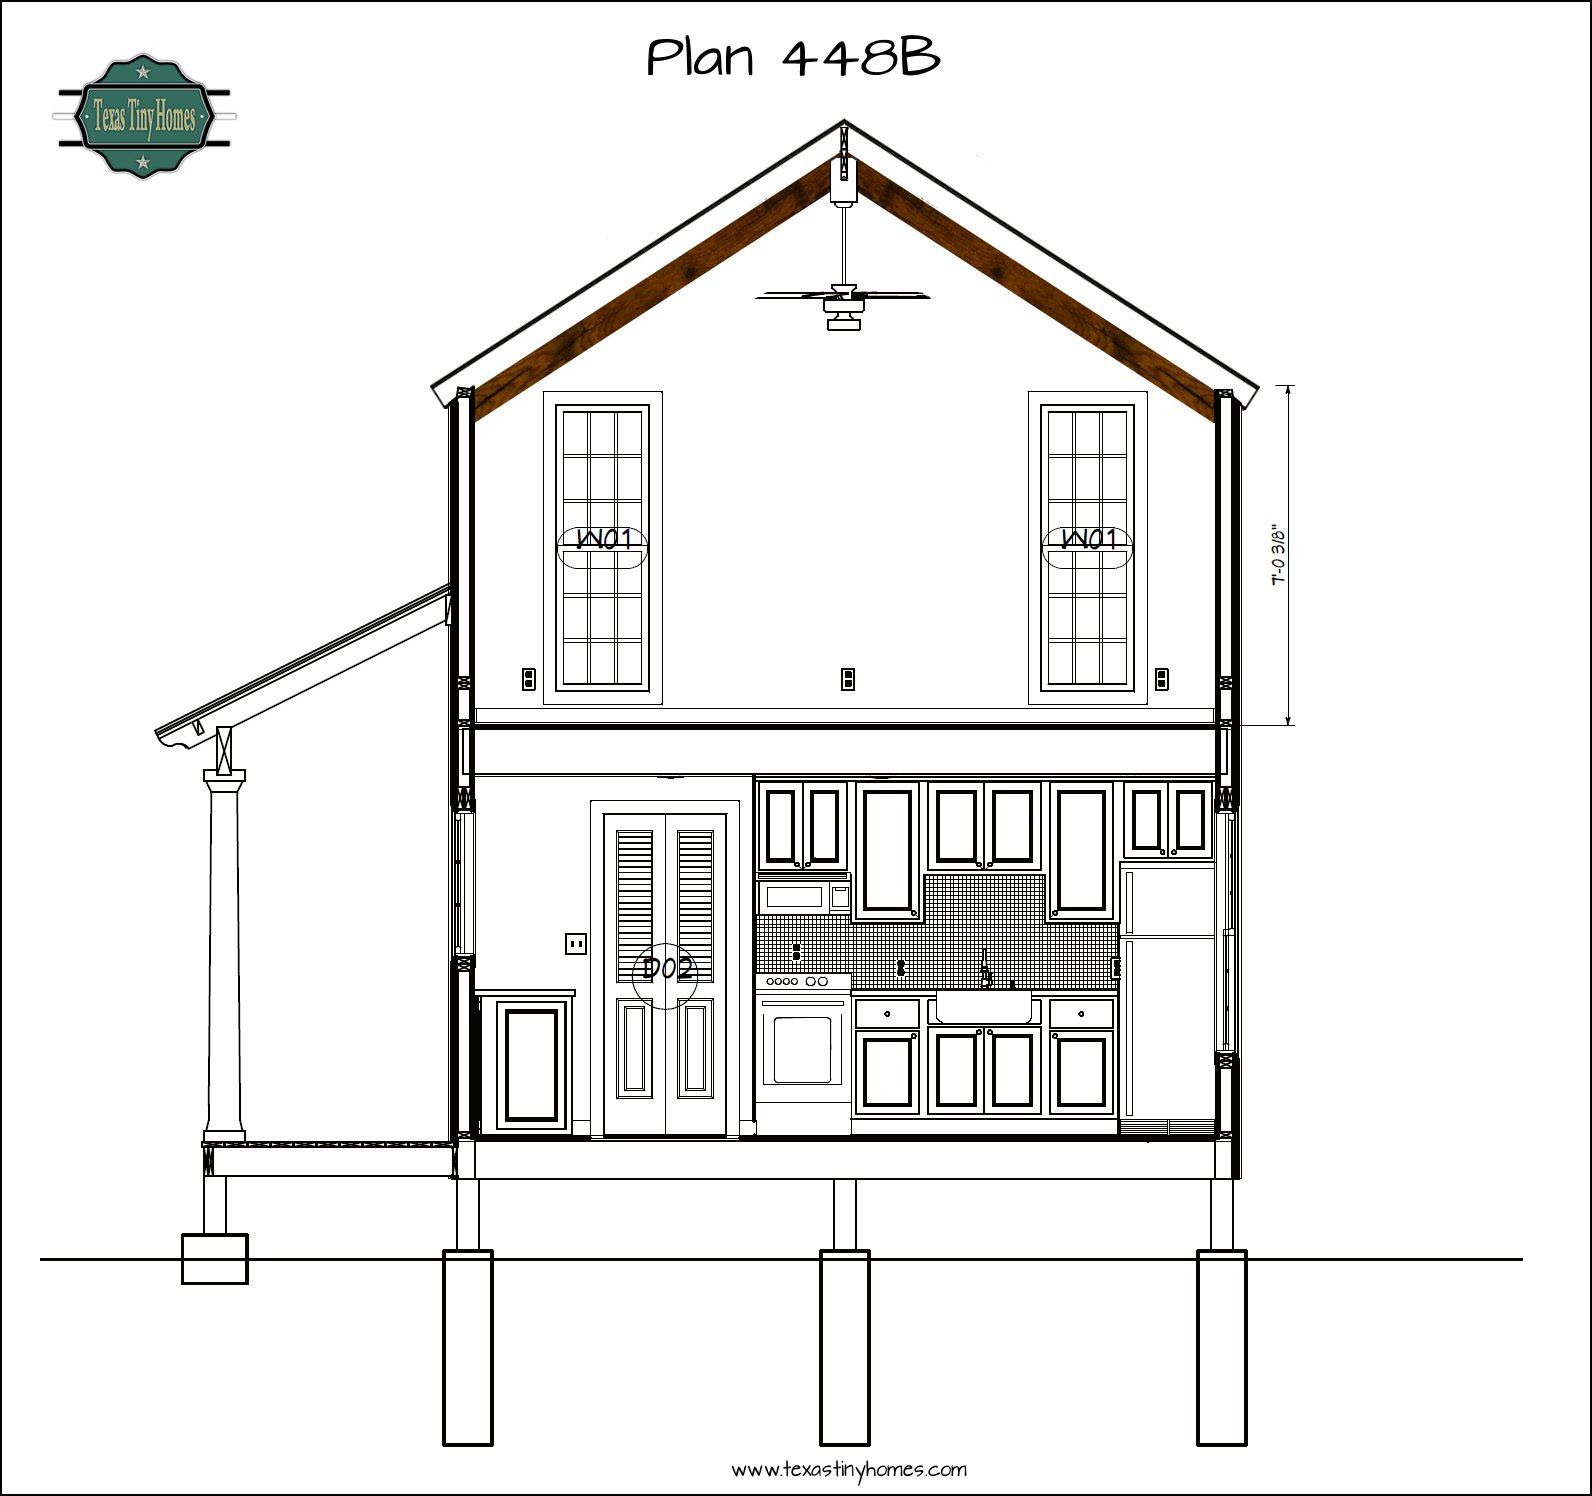 Farmhouse Plans, Small Farmhouse Plans, Texas Farmhouses, Luxury Farmhouses, Small Luxury Homes, Small House Plans